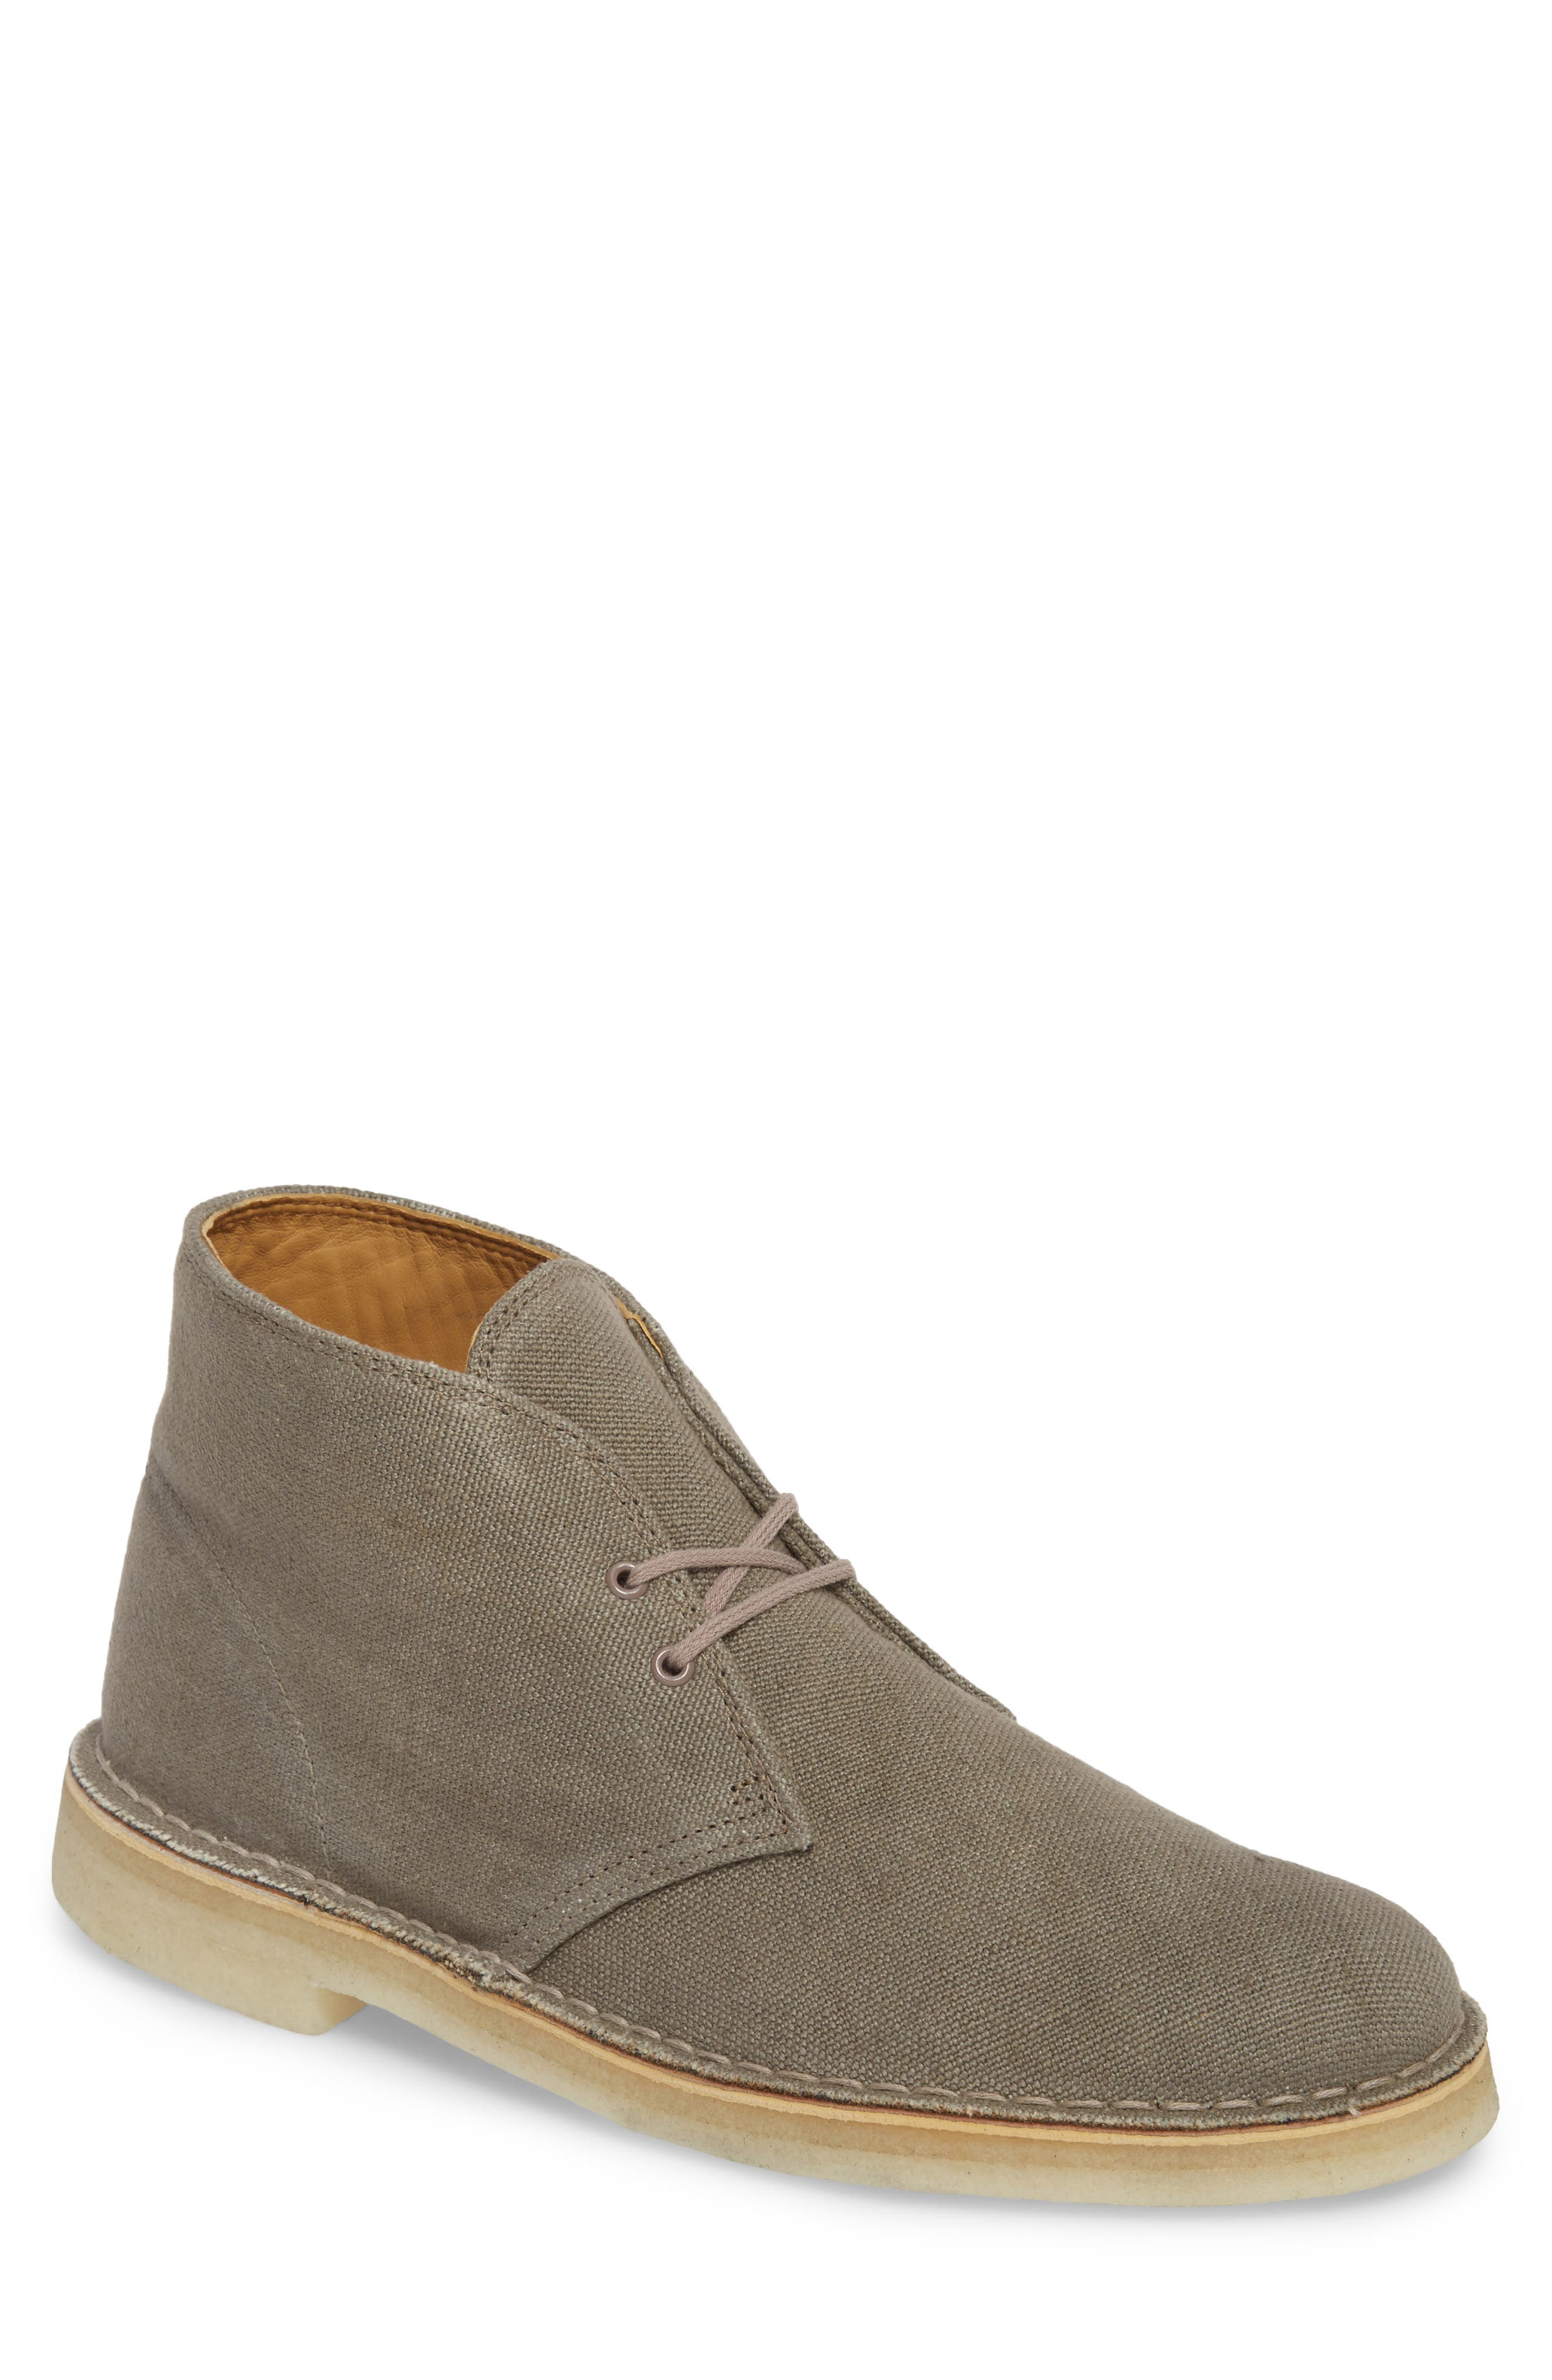 Clarks<sup>®</sup> Desert Chukka Boot,                             Main thumbnail 1, color,                             Taupe Canvas